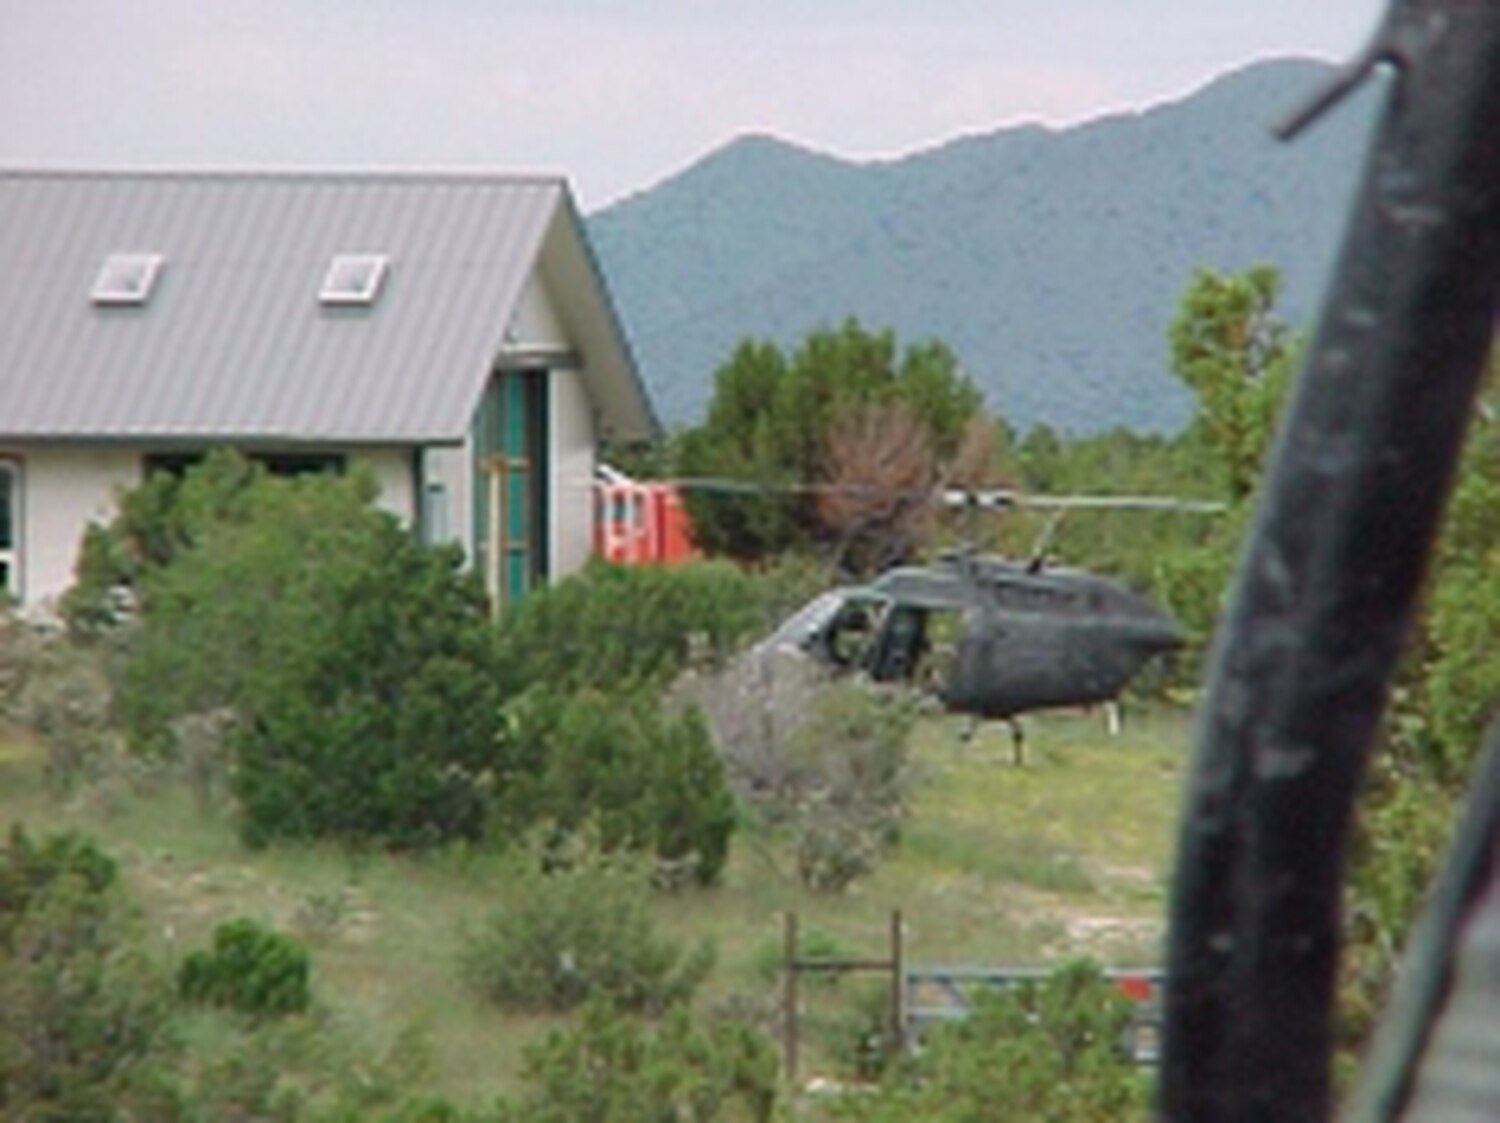 John Smith took this photograph of a National Guard helicopter parked near a Madrid home during a 2006 eradication mission.Credits: Photo courtesy of John Smith